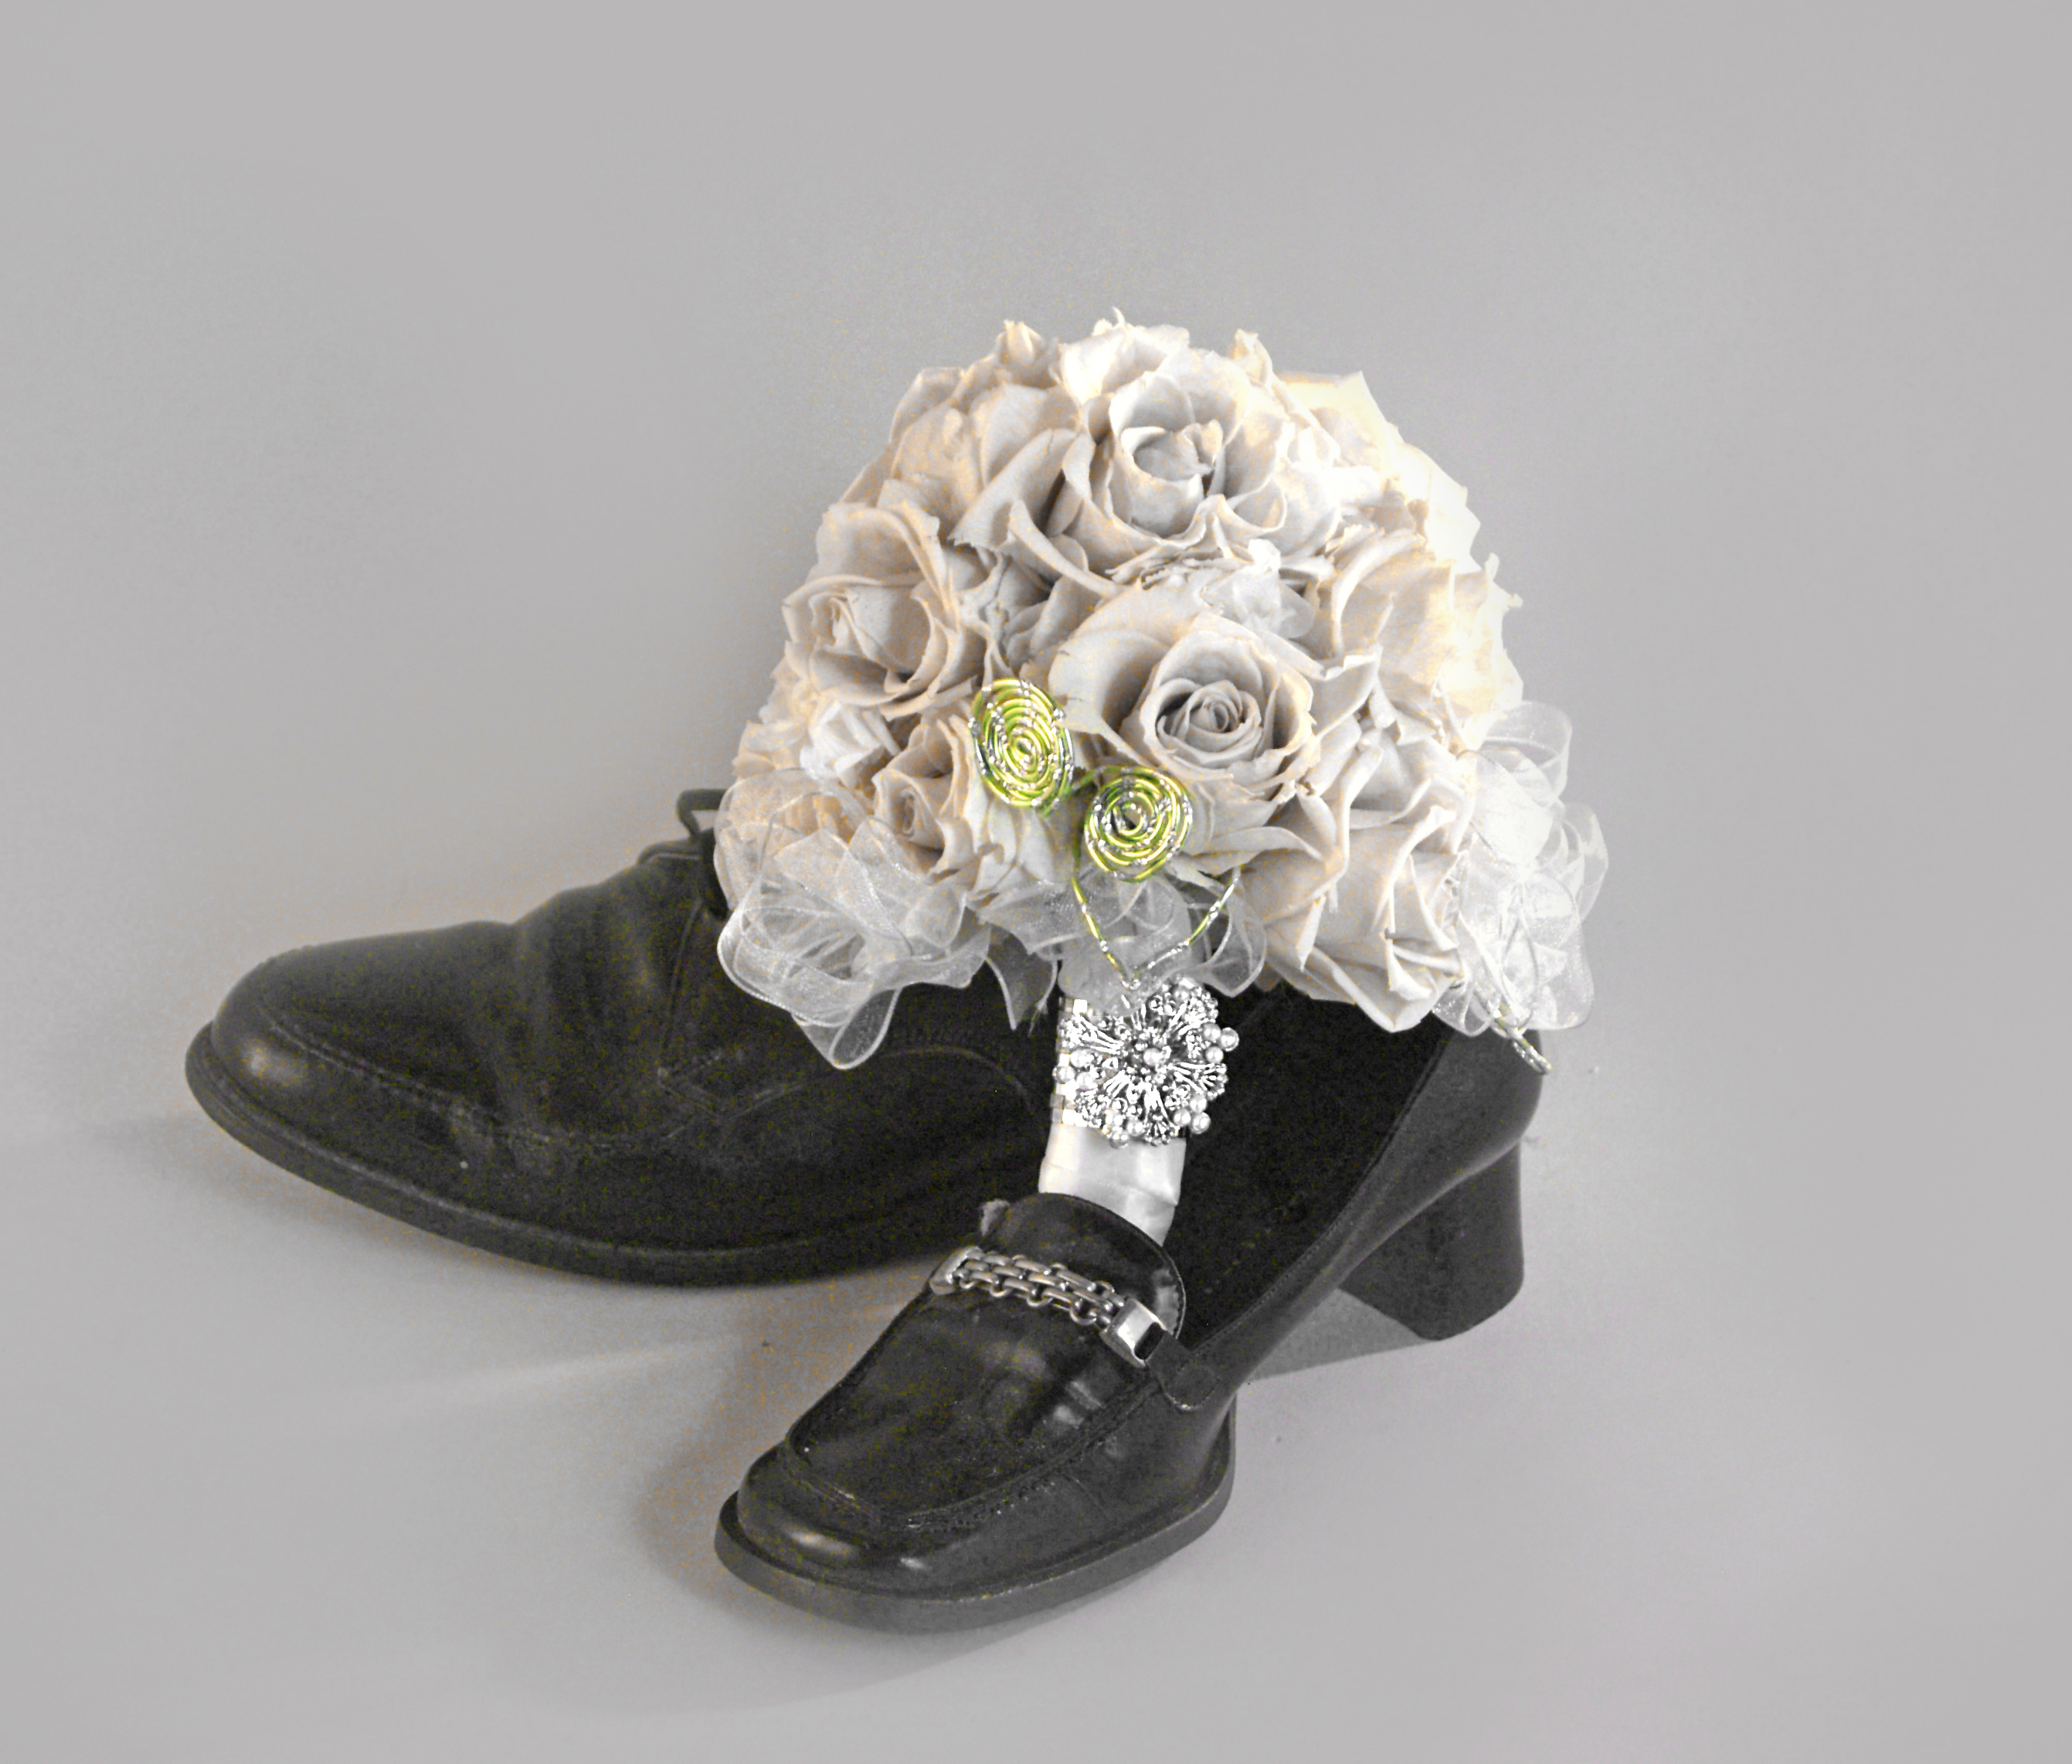 White%20rose%20bouquet,%20black%20shoes.original